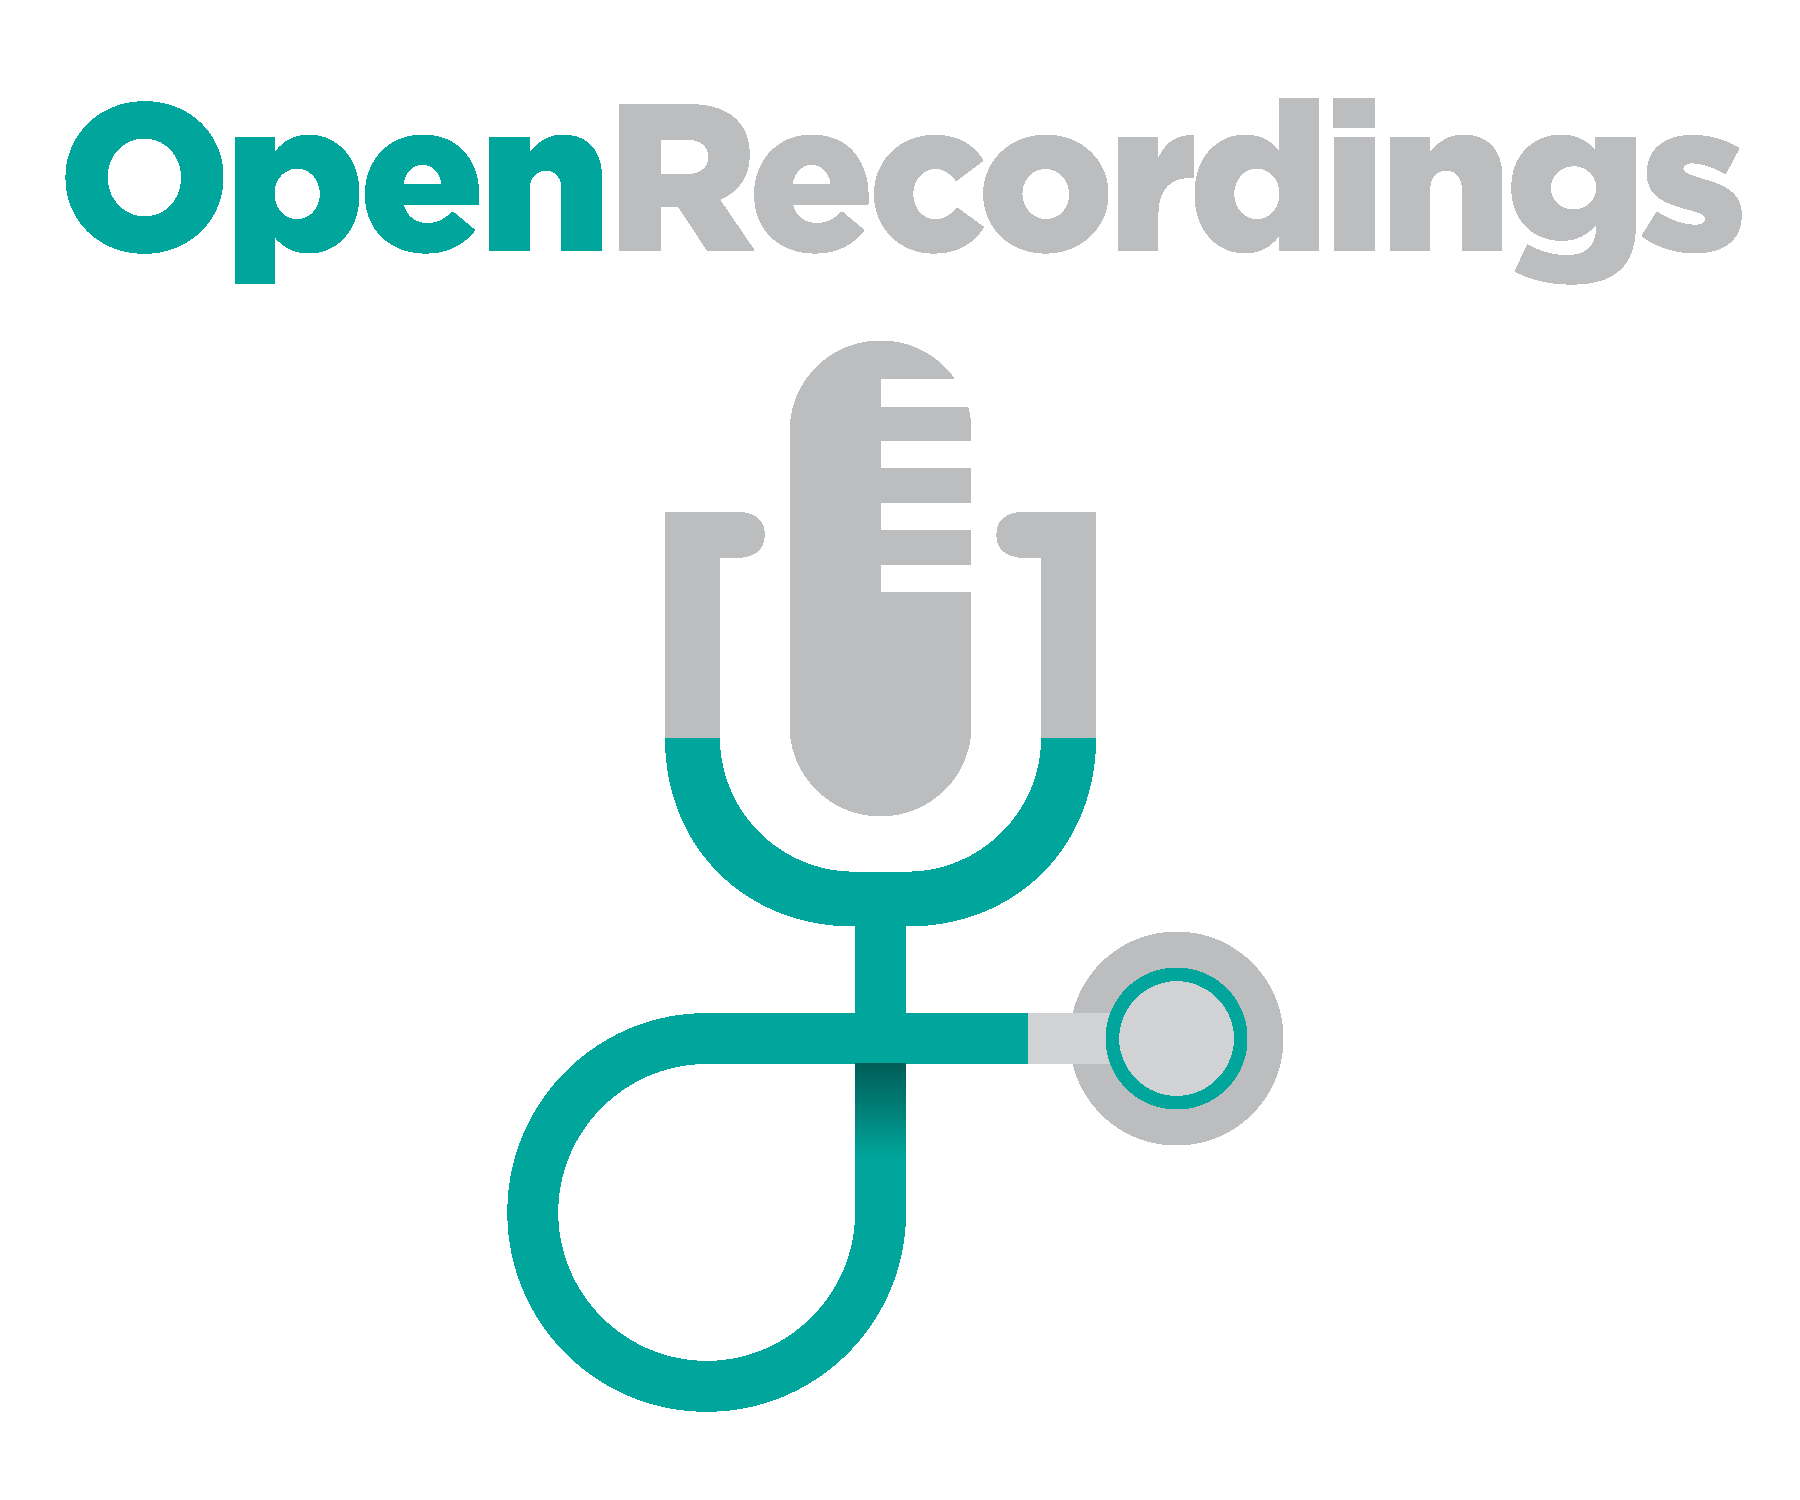 Open Recordings: a great concept that needs an equally great logo!